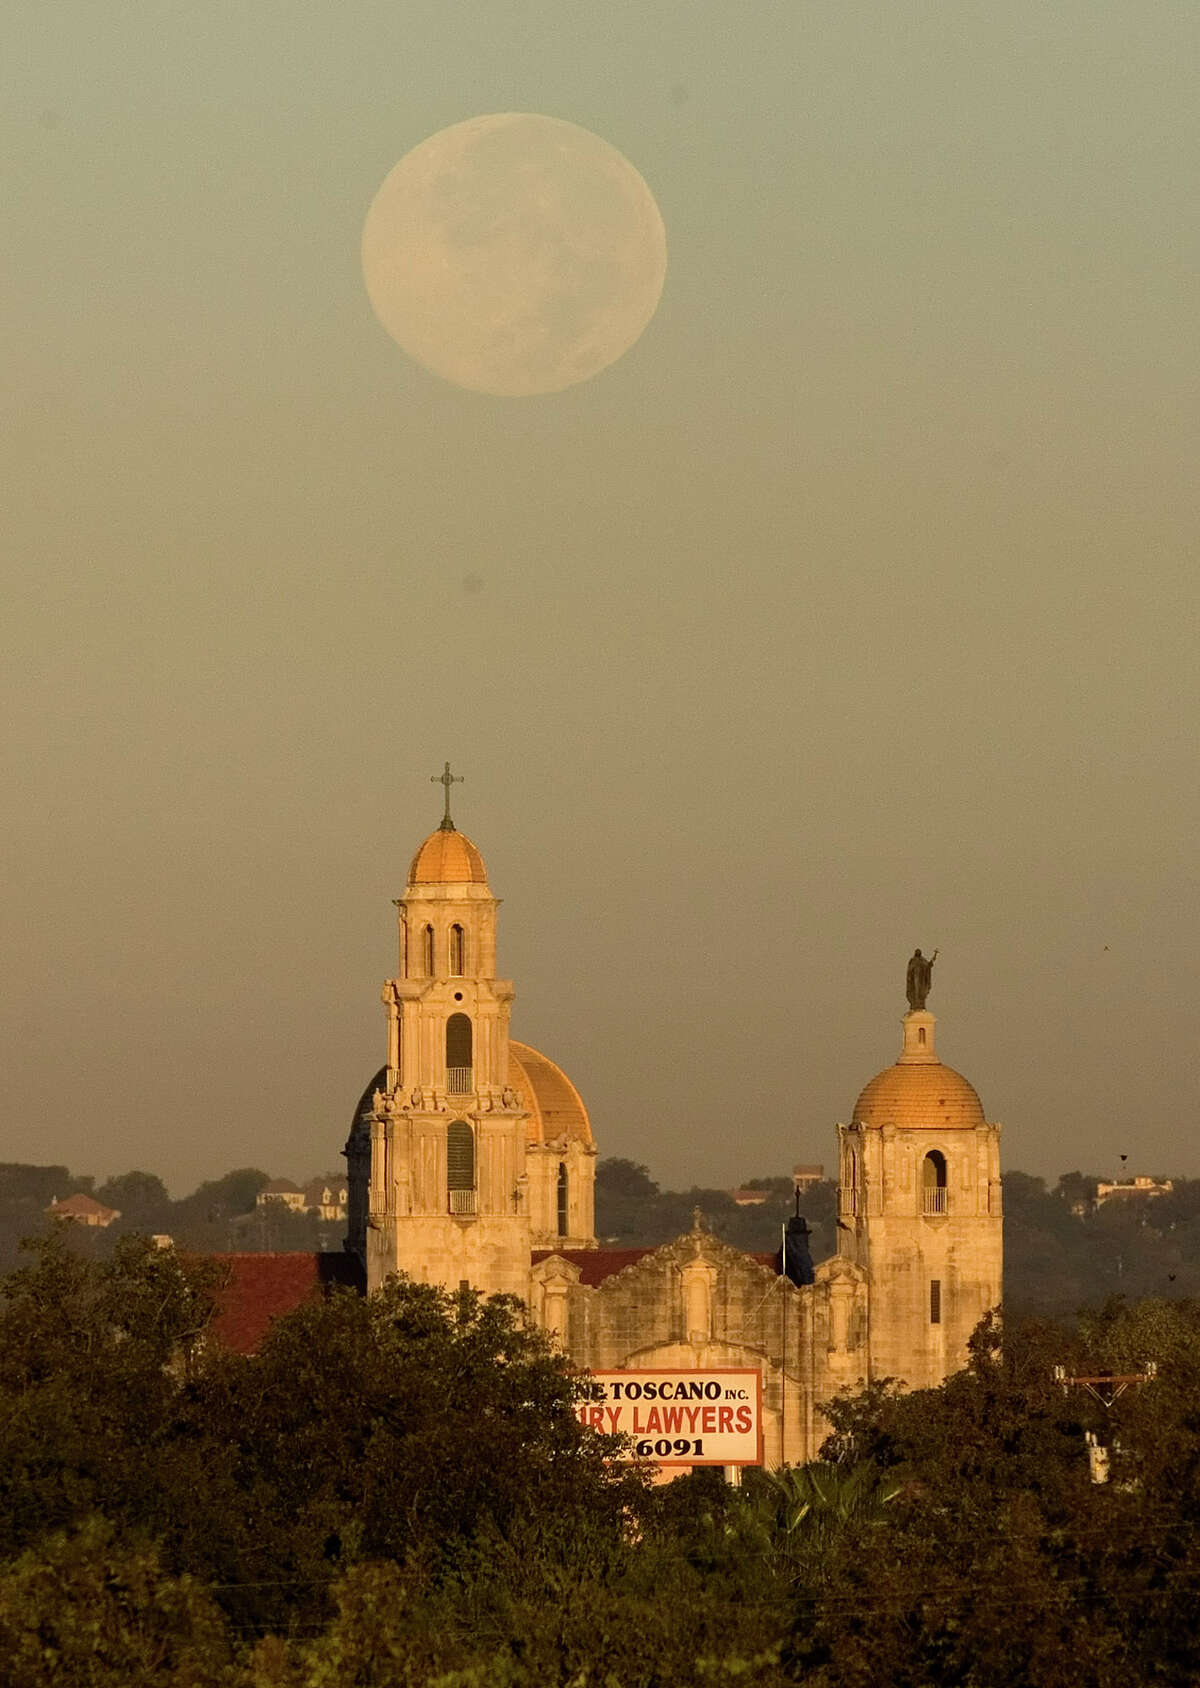 The full moon sets Friday morning Oct. 26, 2007 behind the Basilica of the National Shrine of the Little Flower.